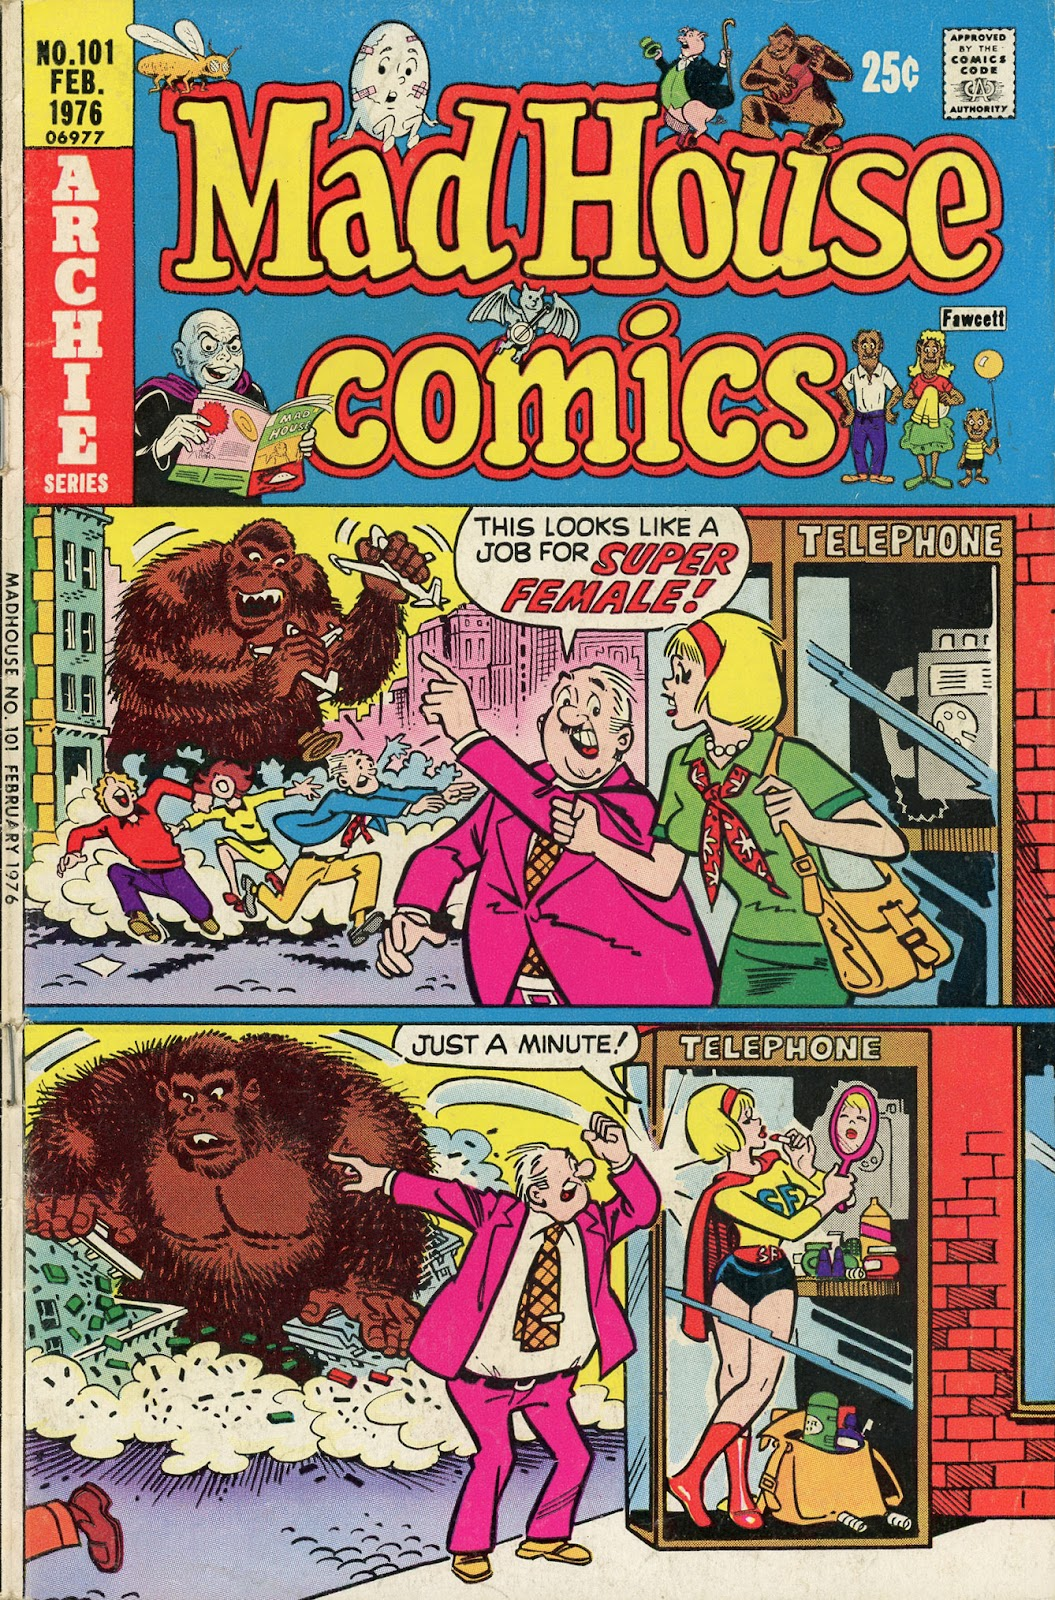 Read online Madhouse Comics comic -  Issue #101 - 1